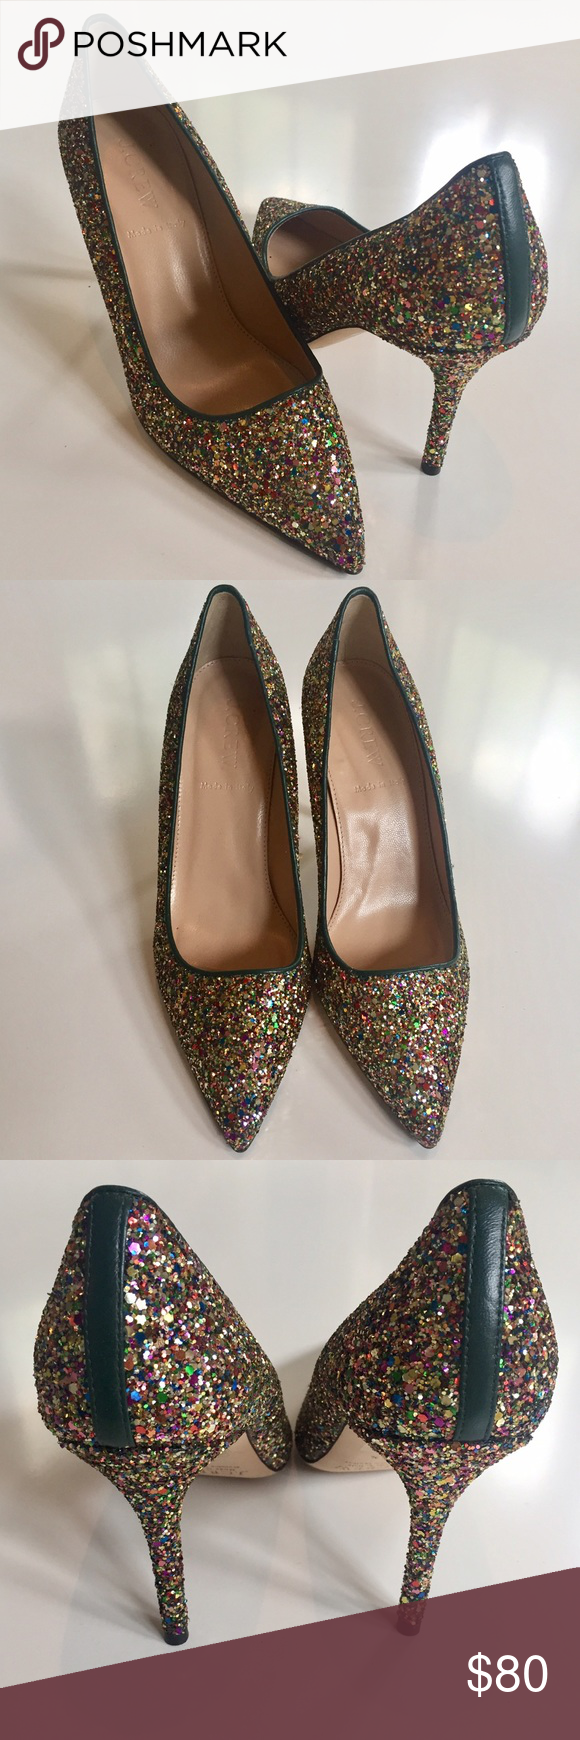 "JCREW Glitter Point Toe Pumps NEVER WORN Gorgeous JCREW Collection glitter point-toe pumps NEVER WORN. Beautiful, comfortable, and extremely high quality - Made in Italy. Forest green leather piping around opening and tab at back ankle with a 3.75"" heel. Perfect for fall and winter parties! J. Crew Shoes Heels"